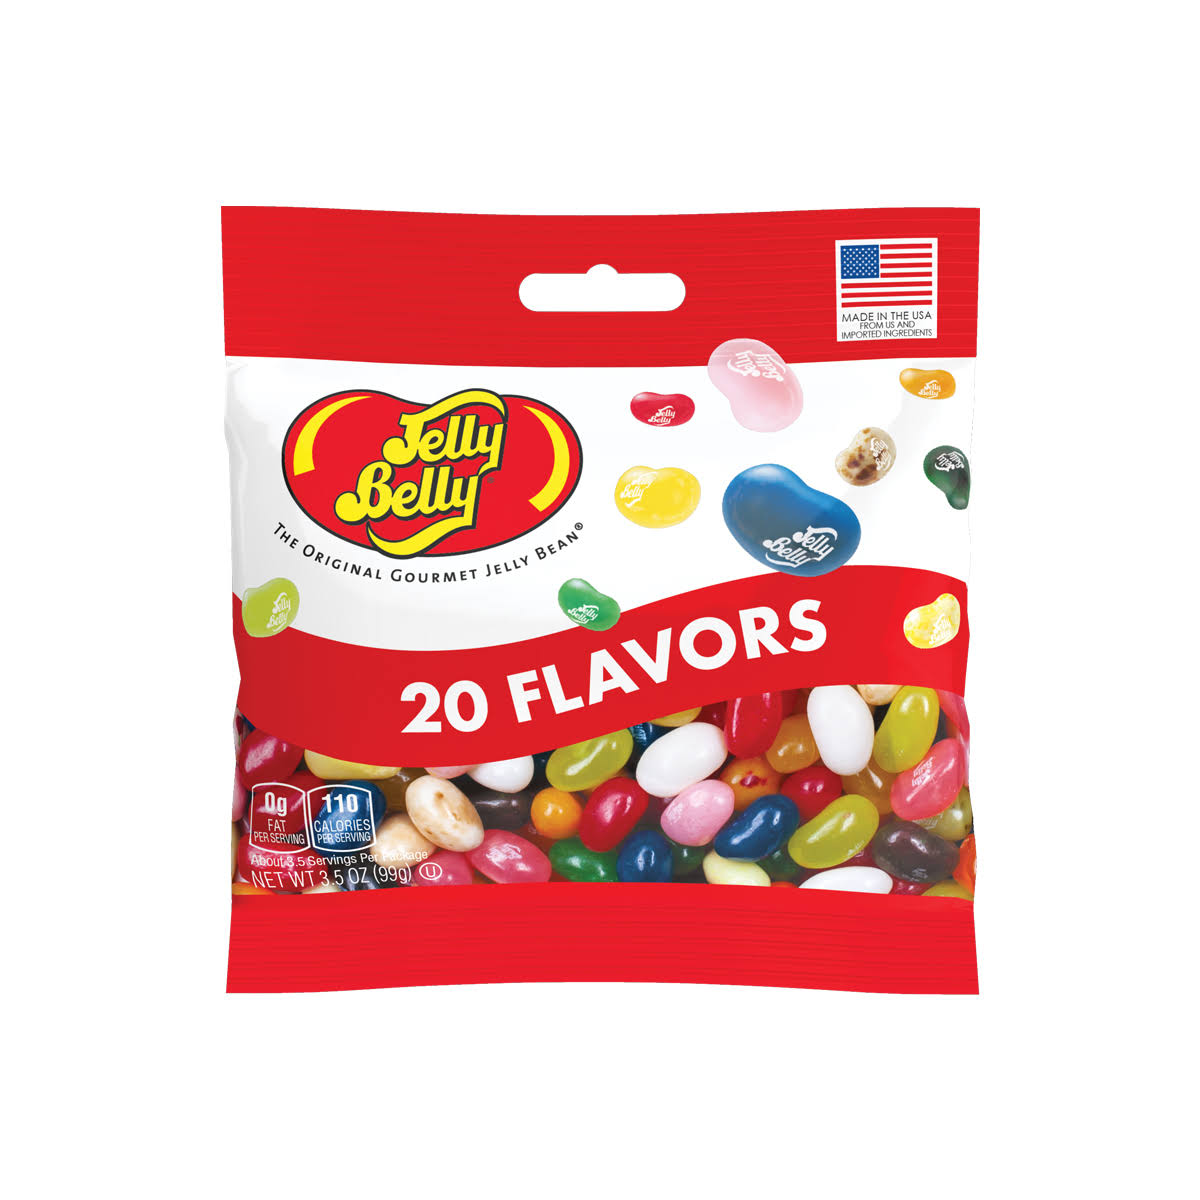 Jelly Belly Candy - 20 Flavors, 3.5oz